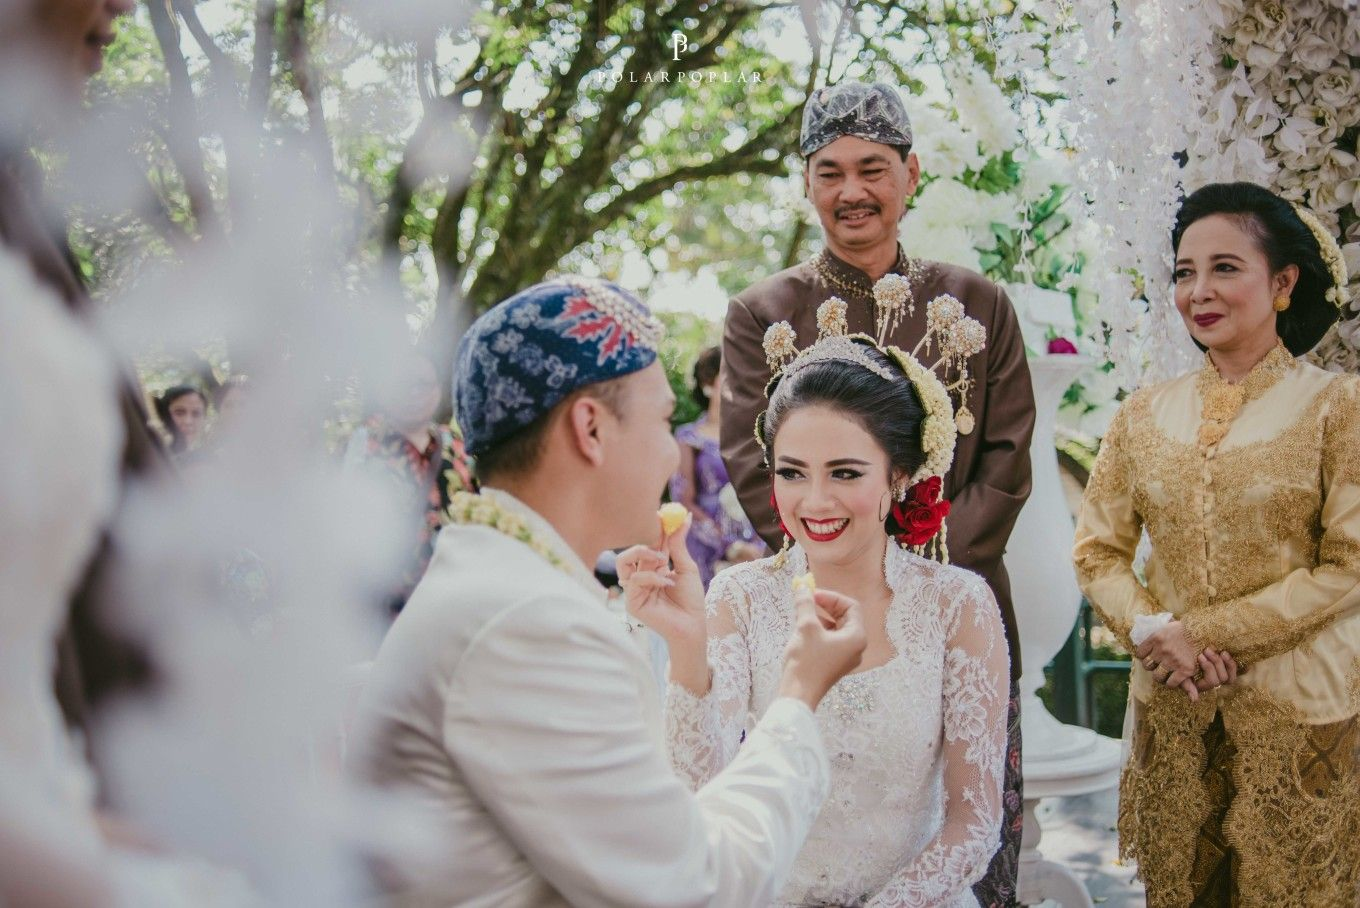 Today, Bridestory is proud to celebrate Indonesia's 71st